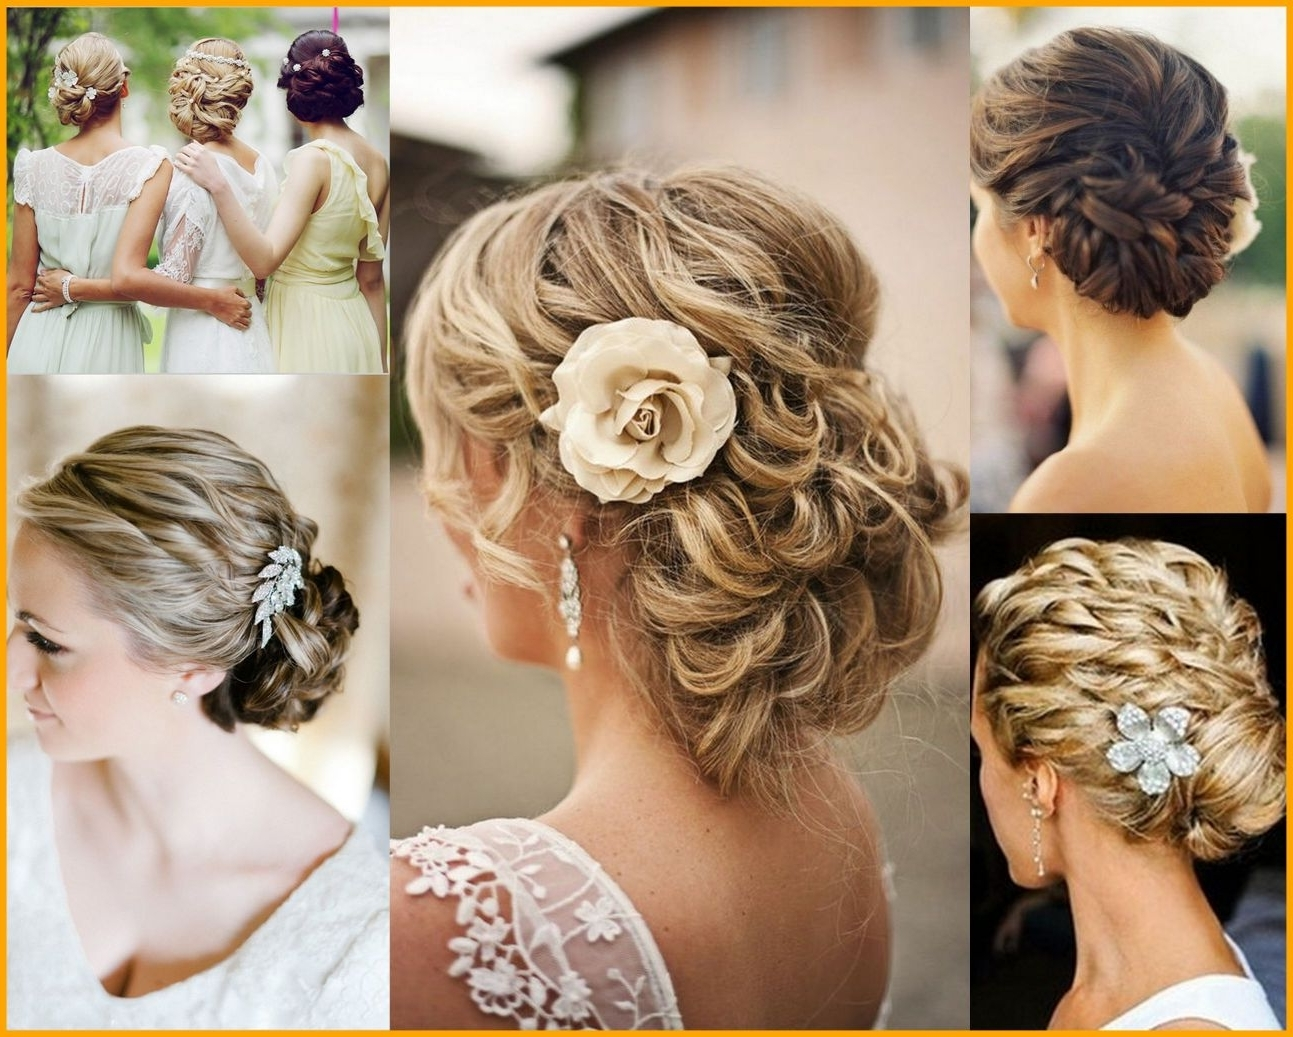 Marvelous Country Wedding Hairstyles For Bridesmaids Ideas Picture Regarding Latest Country Wedding Hairstyles For Bridesmaids (View 2 of 15)